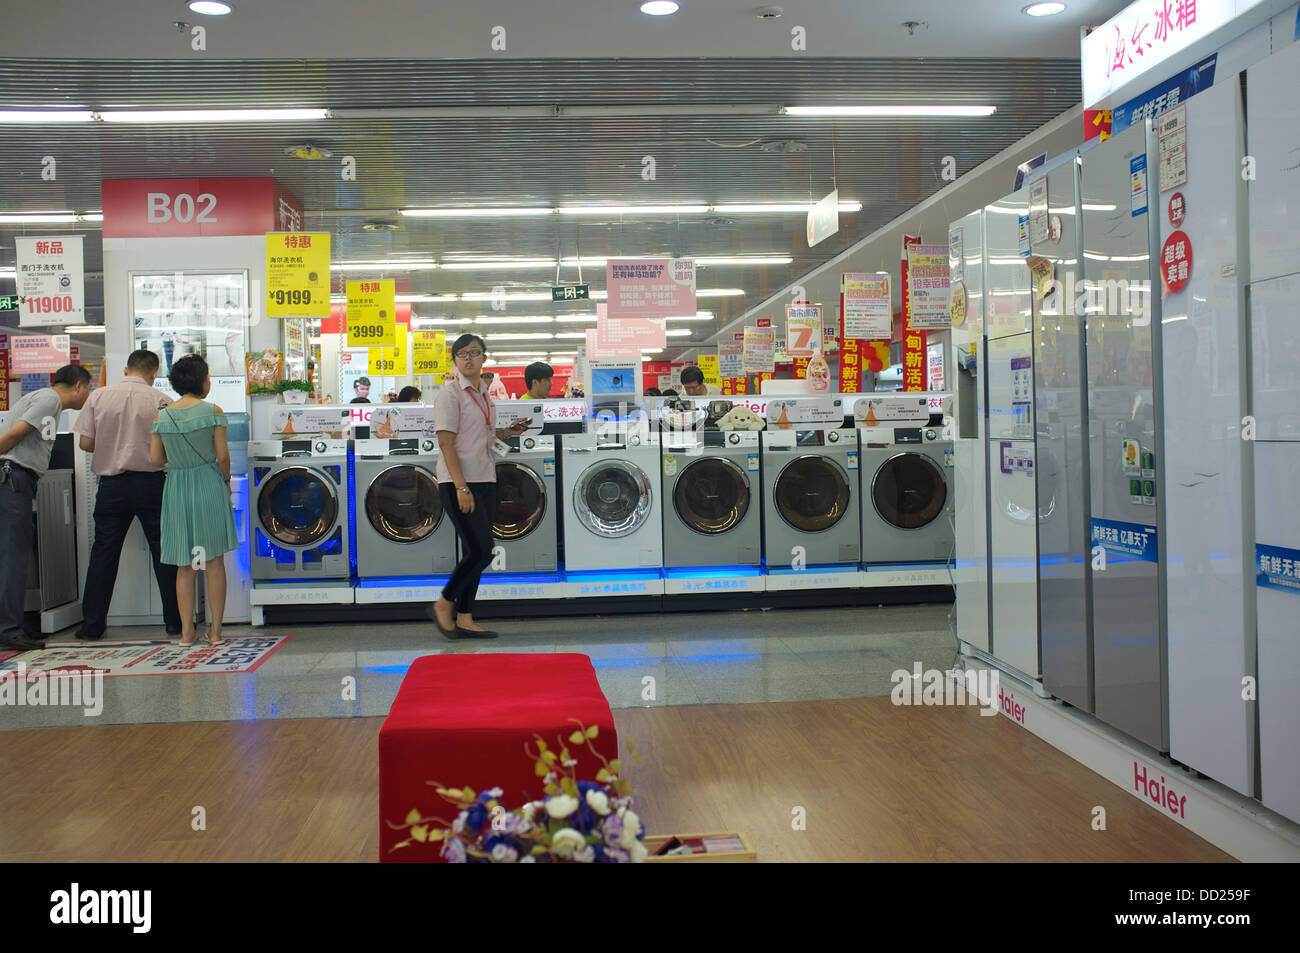 Haier washing machines and refrigerators are on sale in a Gome electrical appliances store in Beijing, China. 2013 Stock Photo